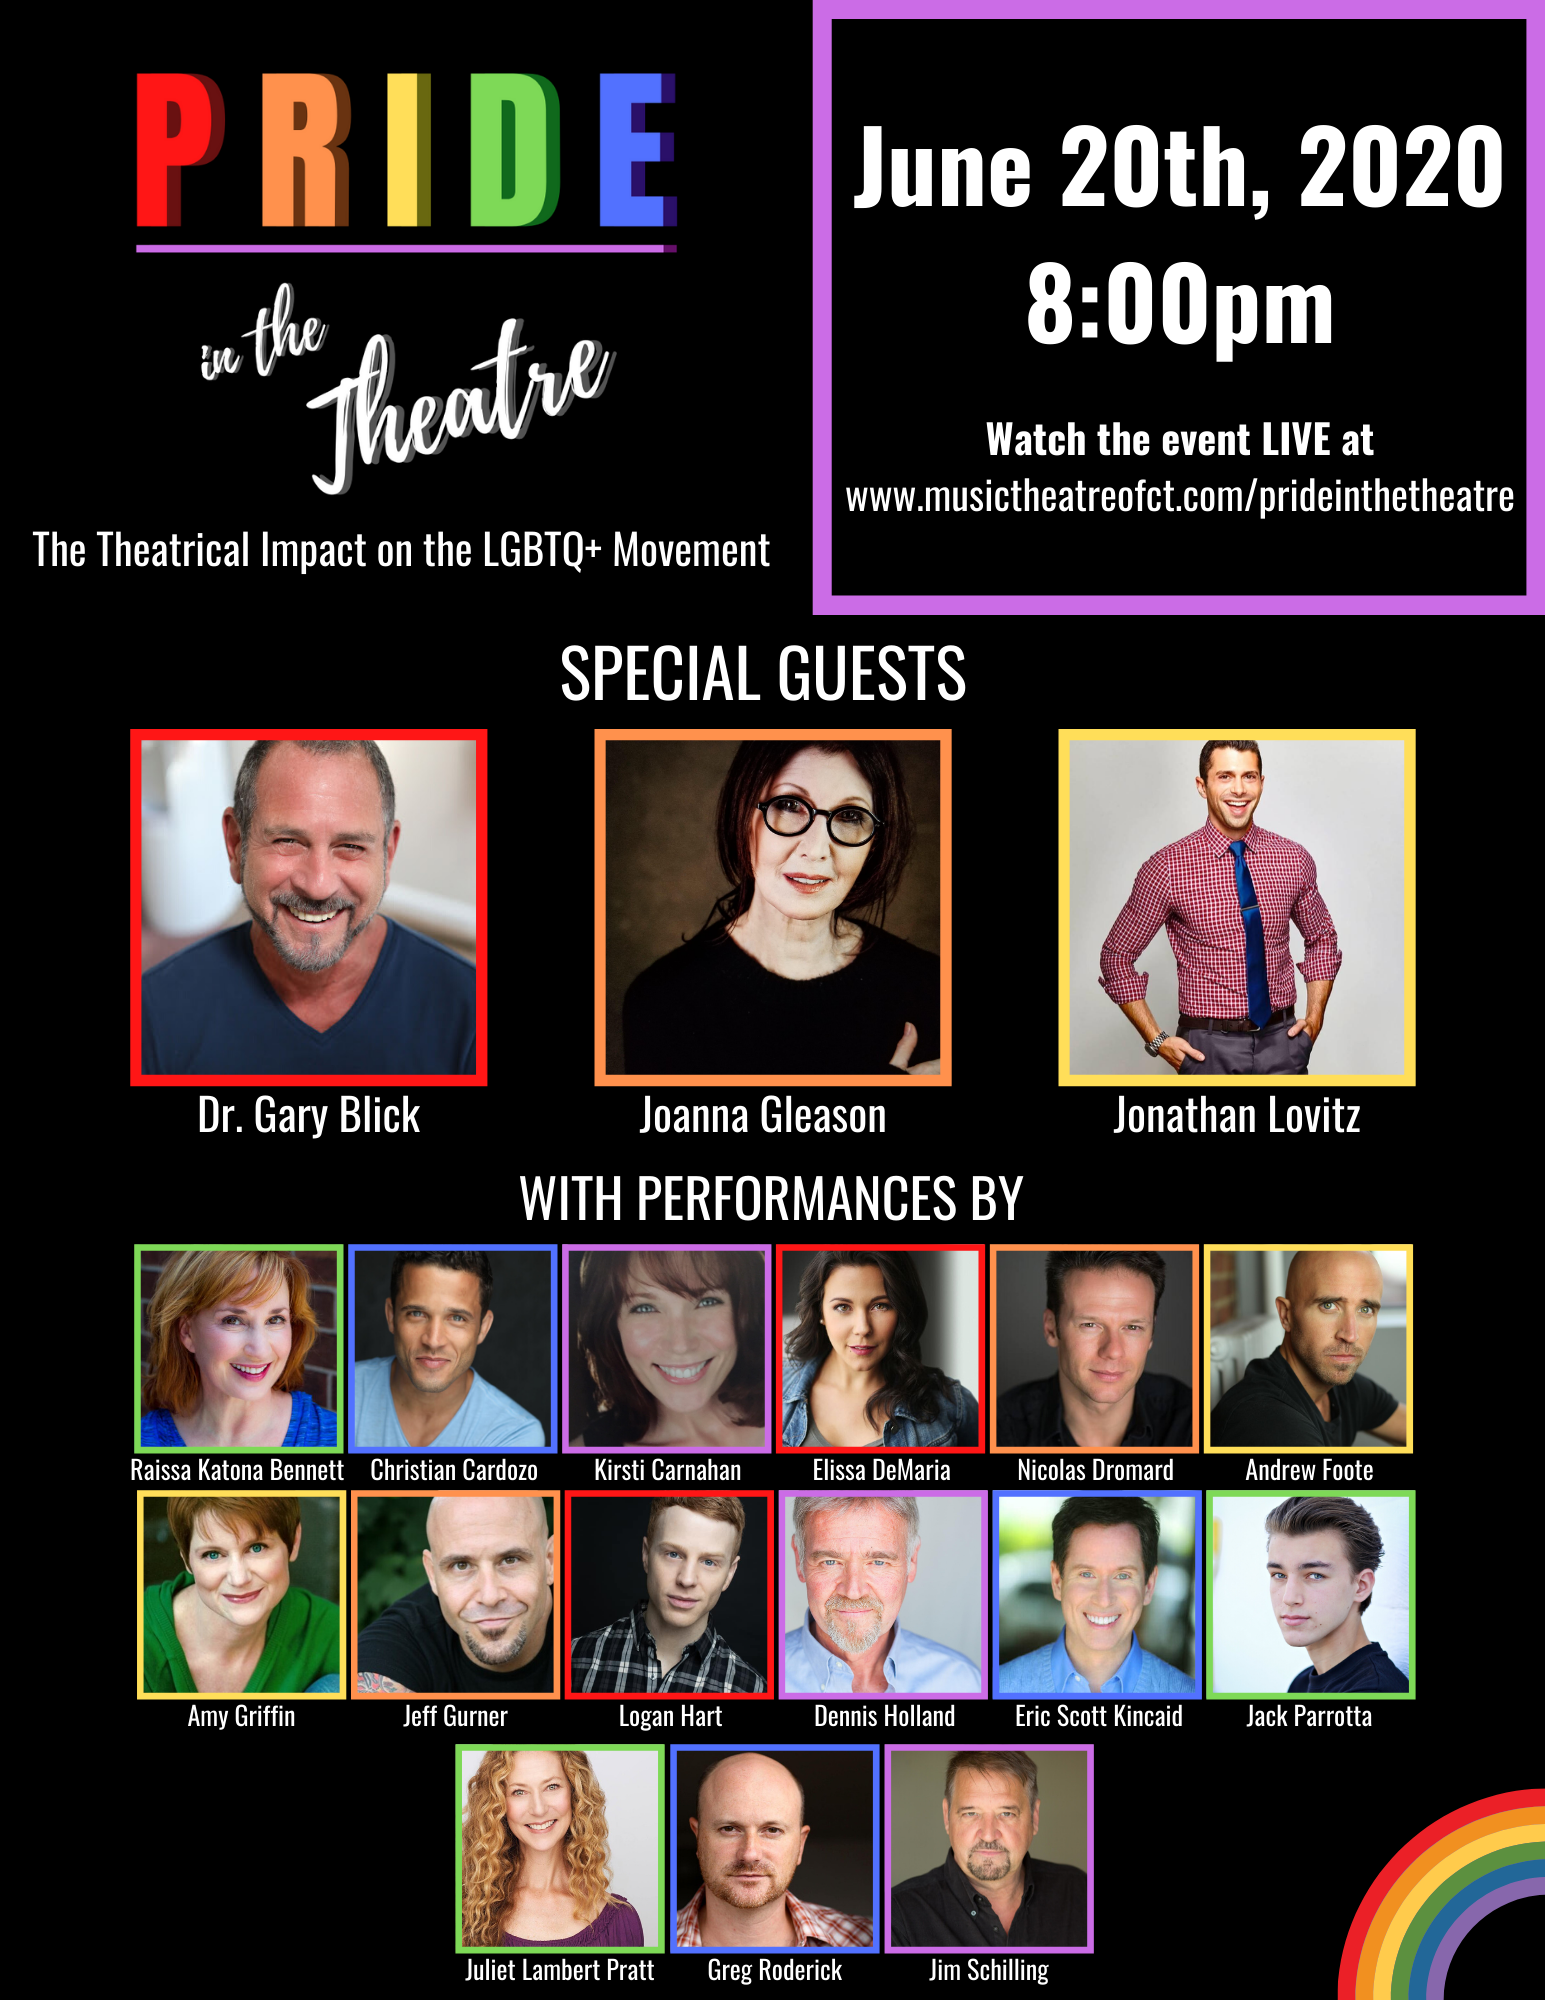 Music Theatre of Connecticut Announces PRIDE IN THE THEATRE Featuring Joanna Gleason and More